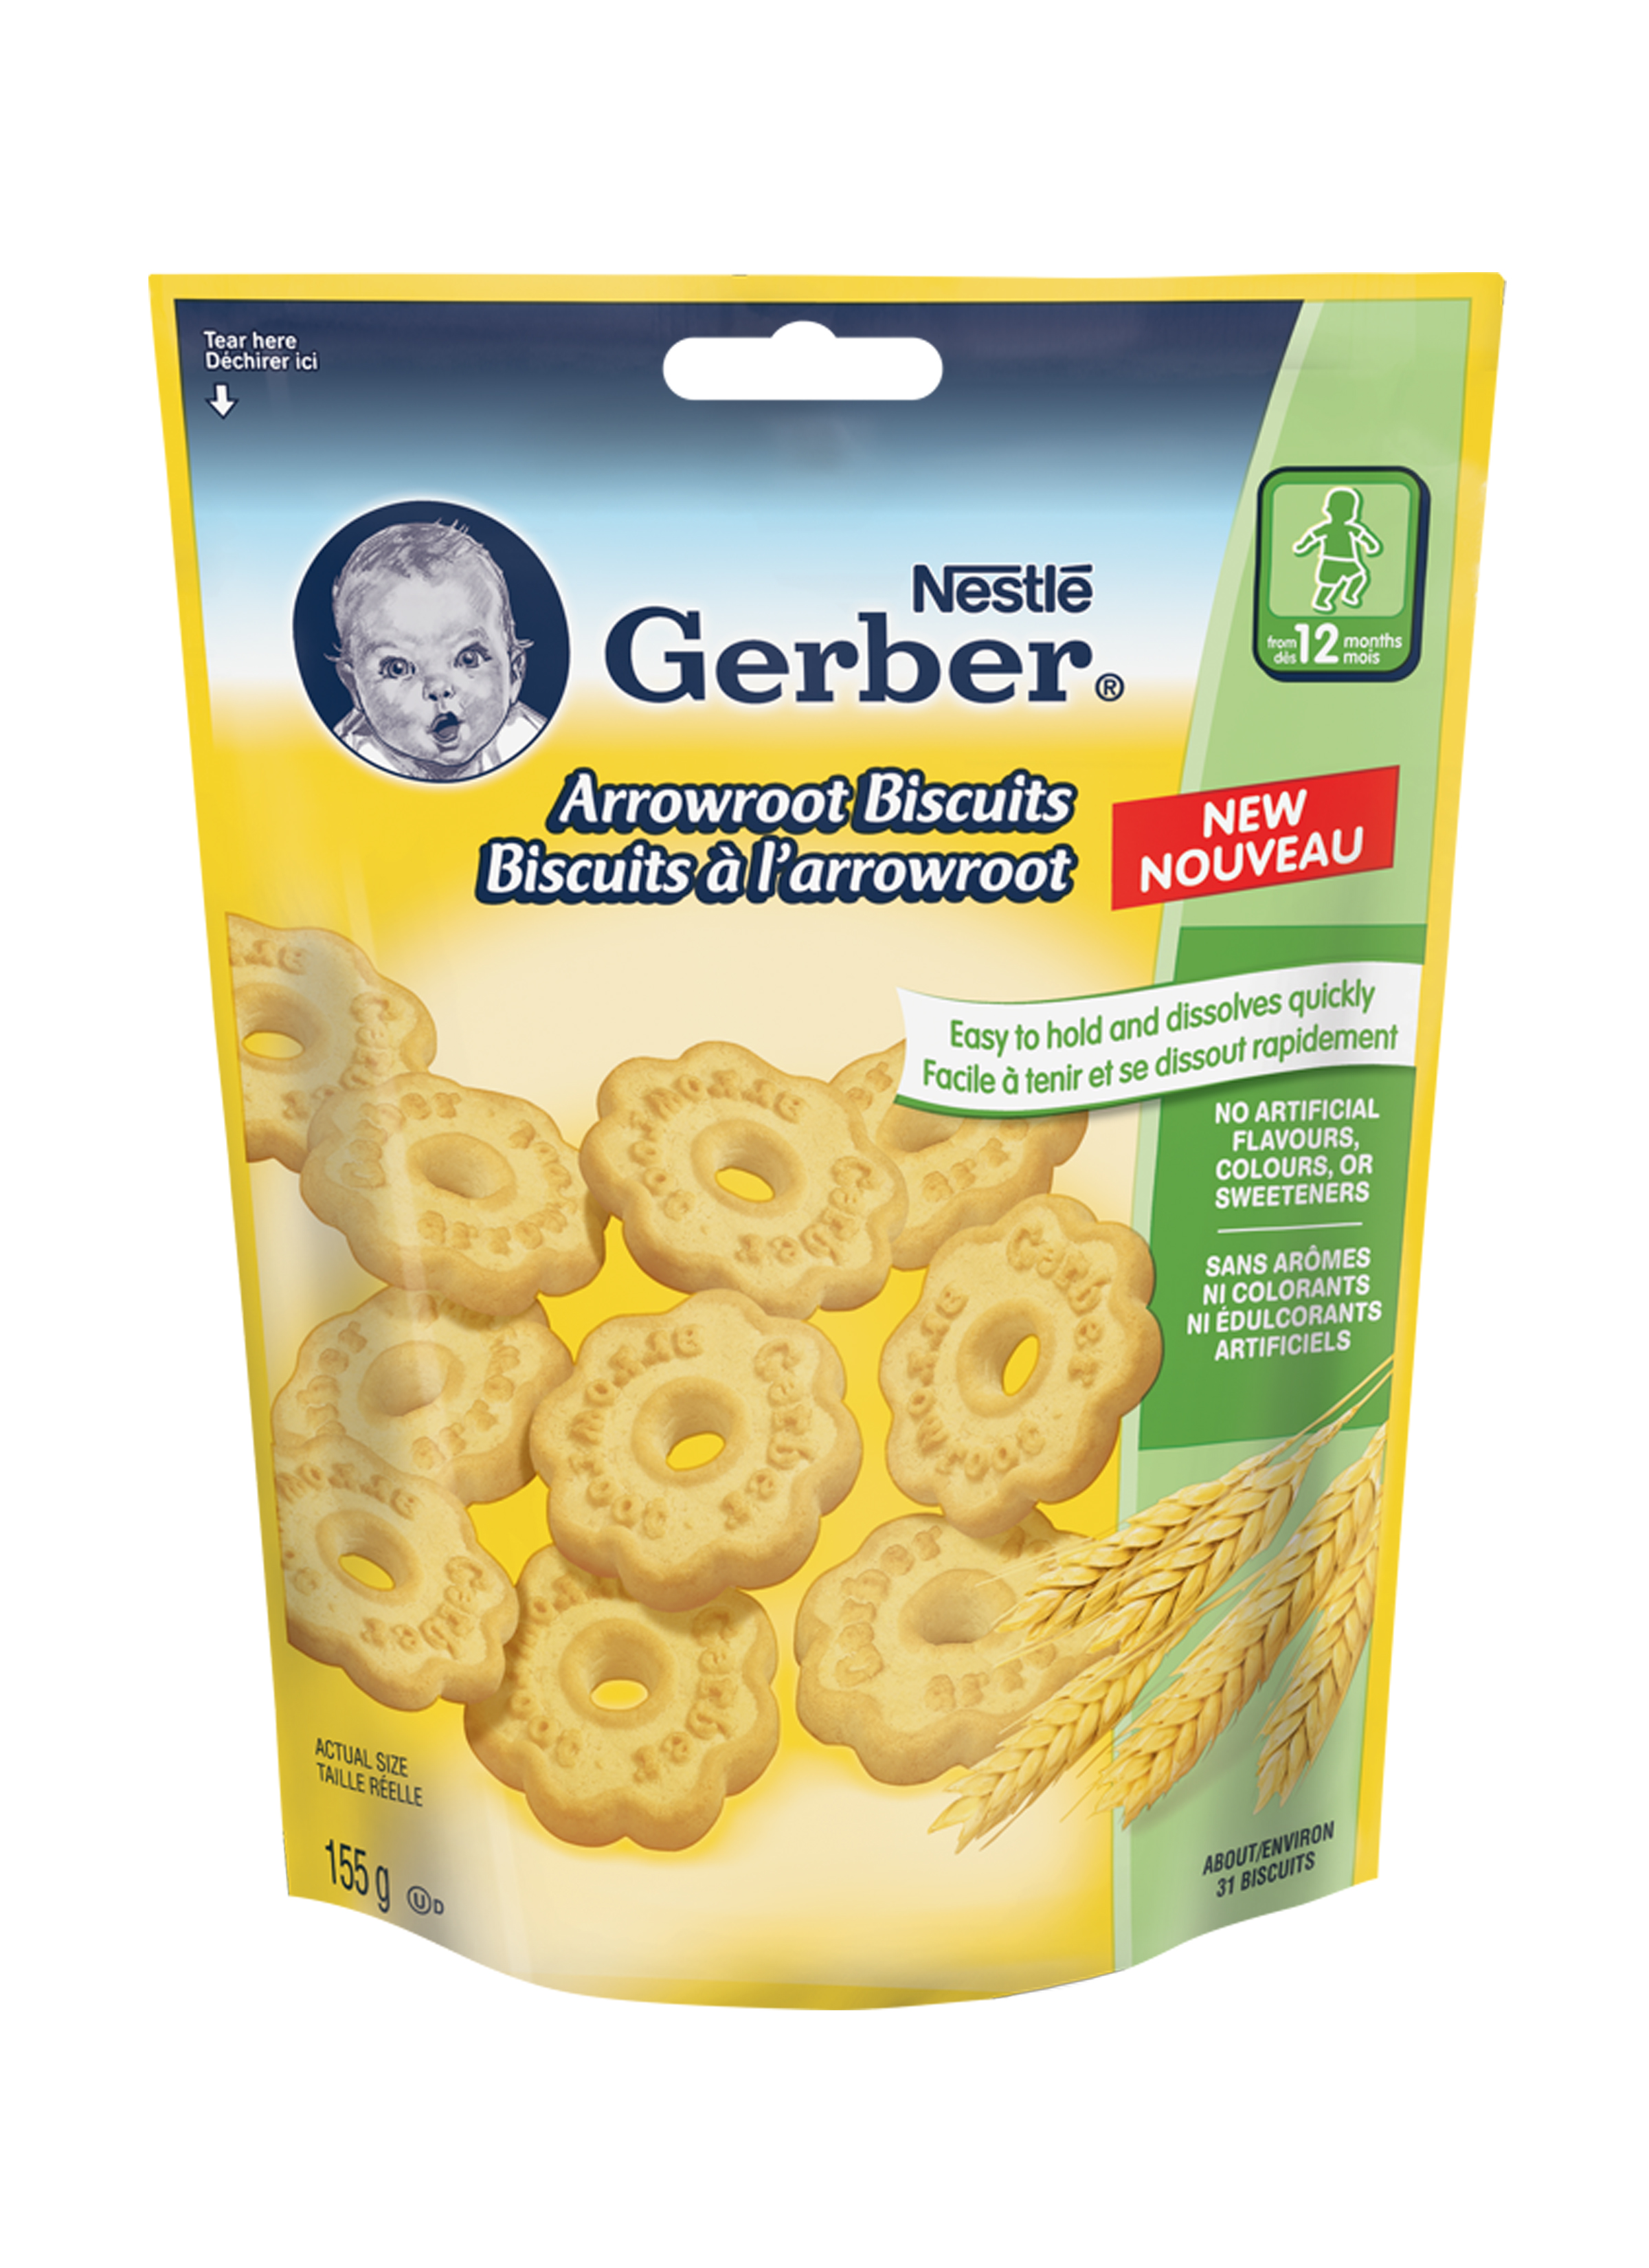 Gerber Arrowroot Biscuits: A great first cookie.